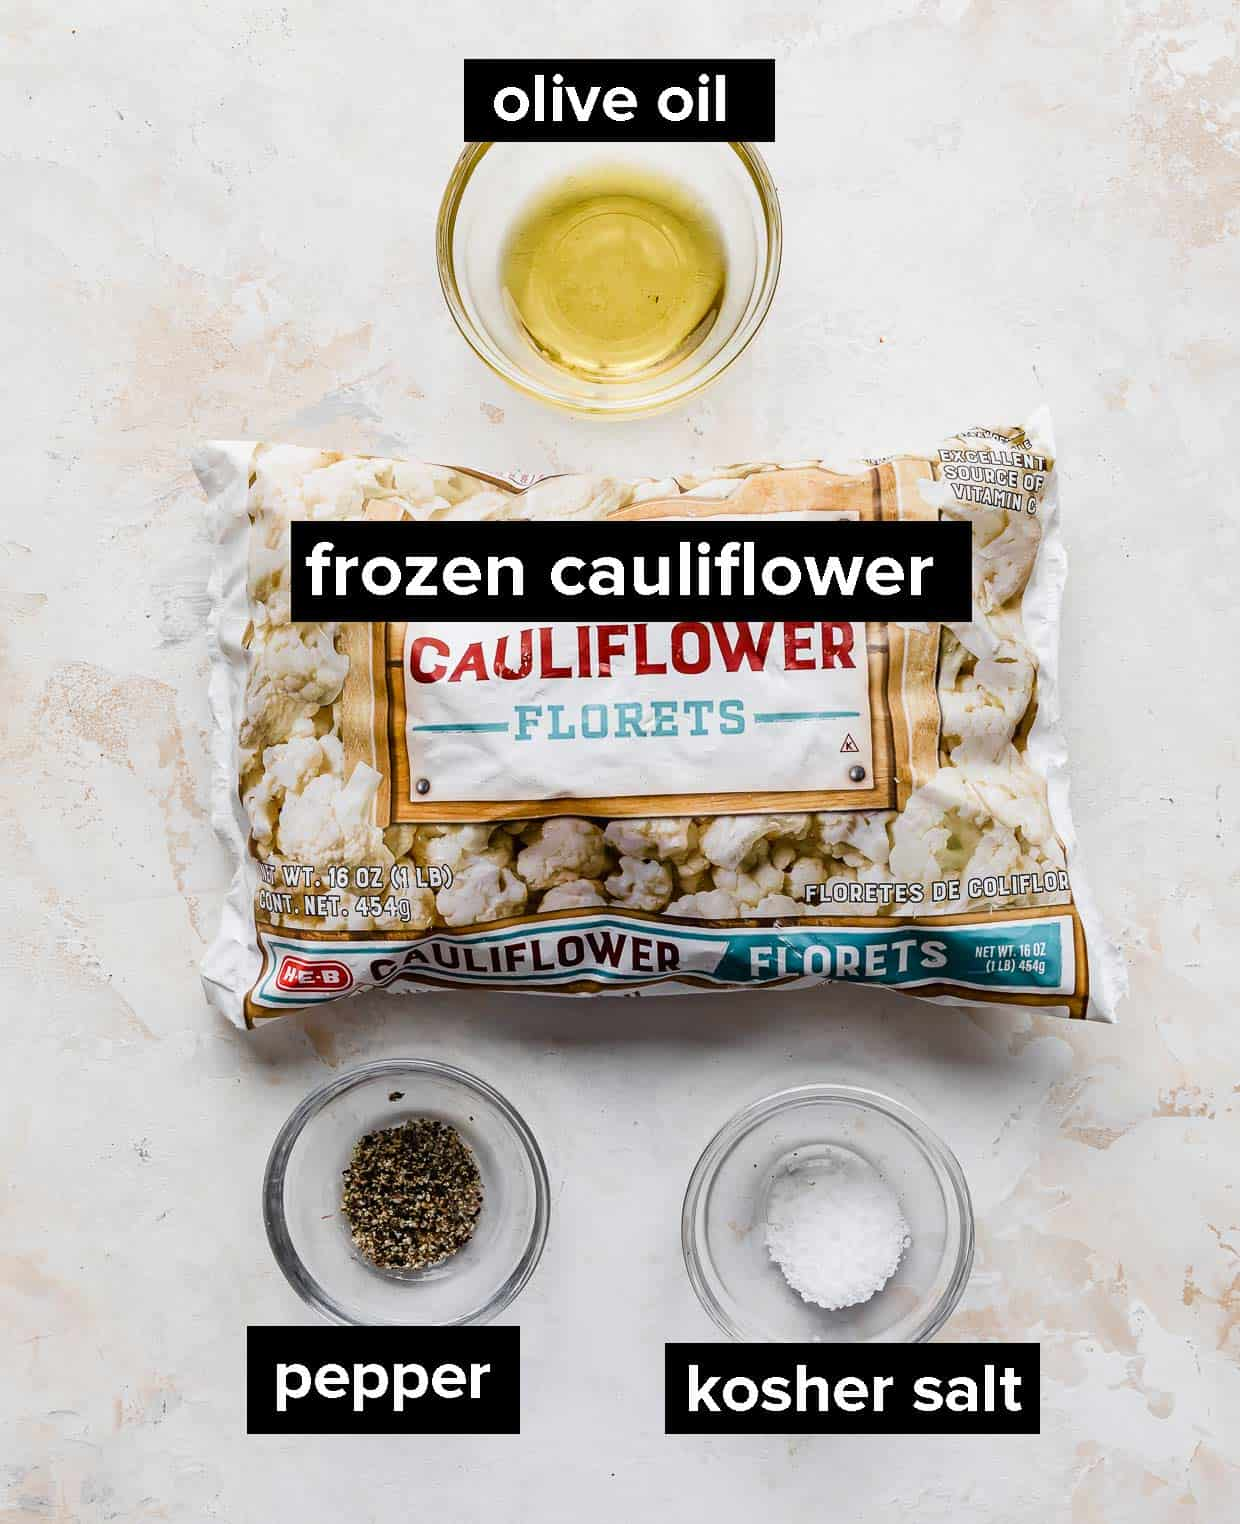 Ingredients used to make Roasted Frozen Cauliflower against a textured white background.